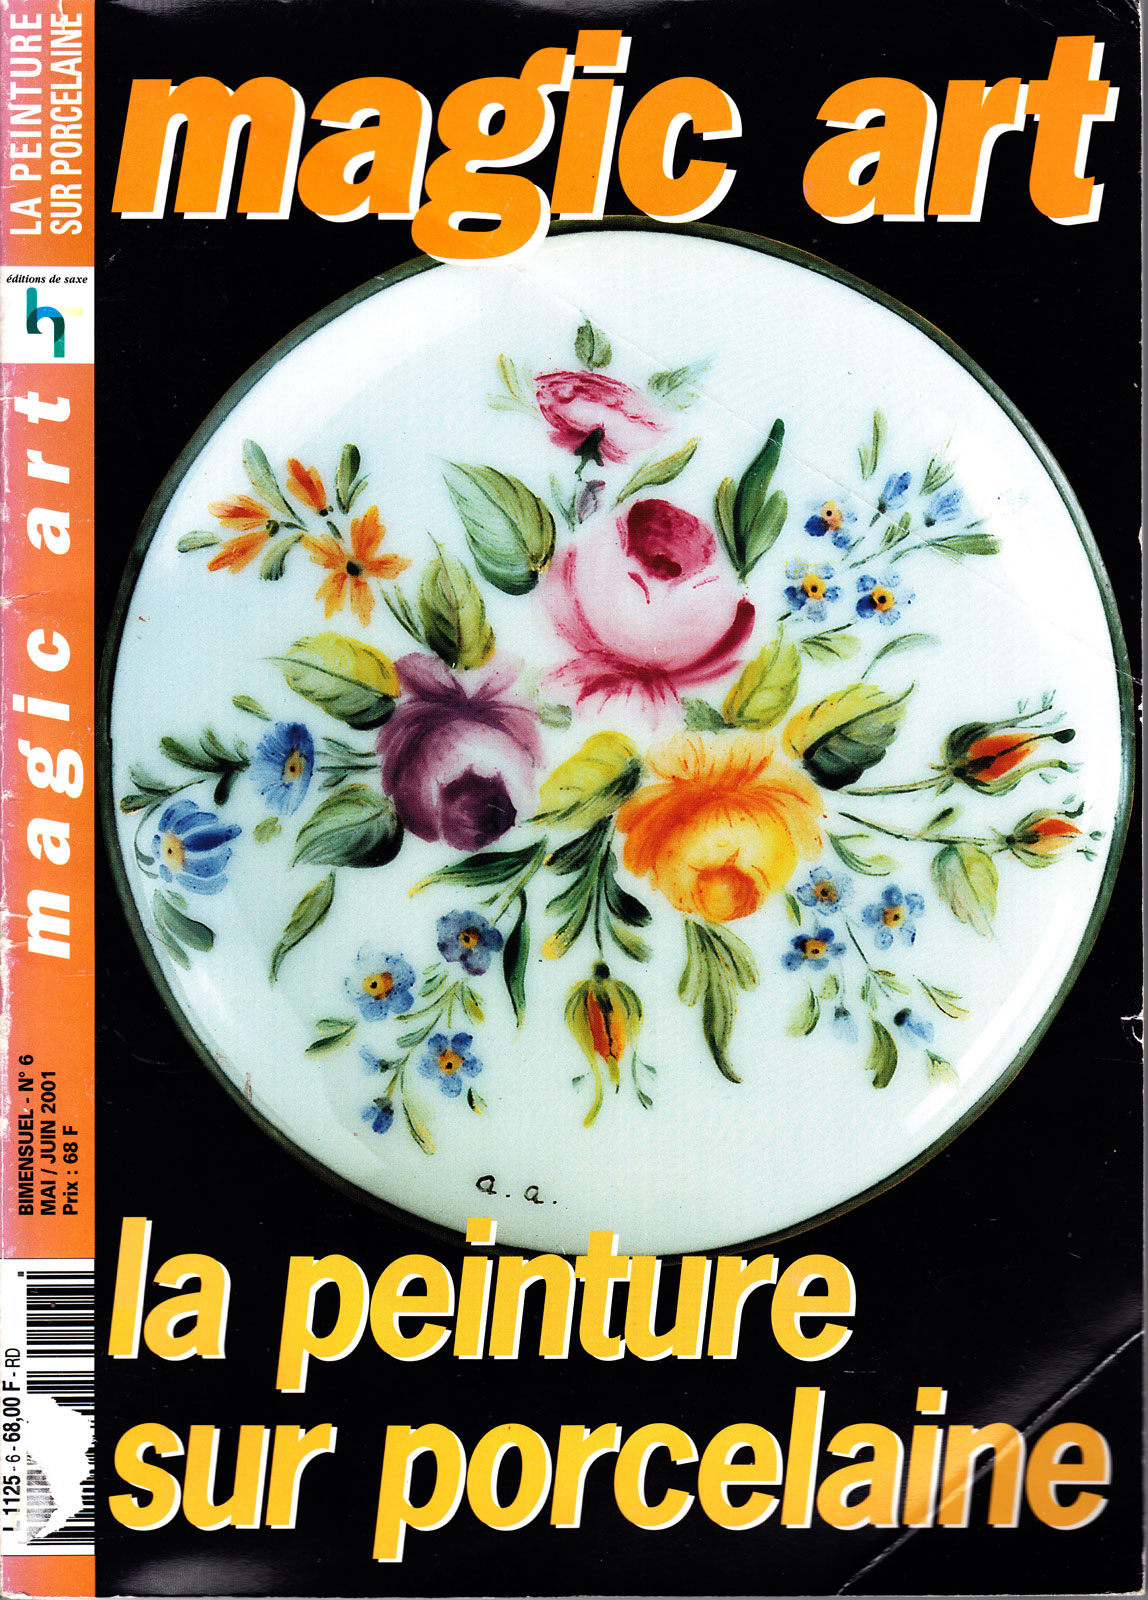 La peinture sur porcelaine - Magic art N°6